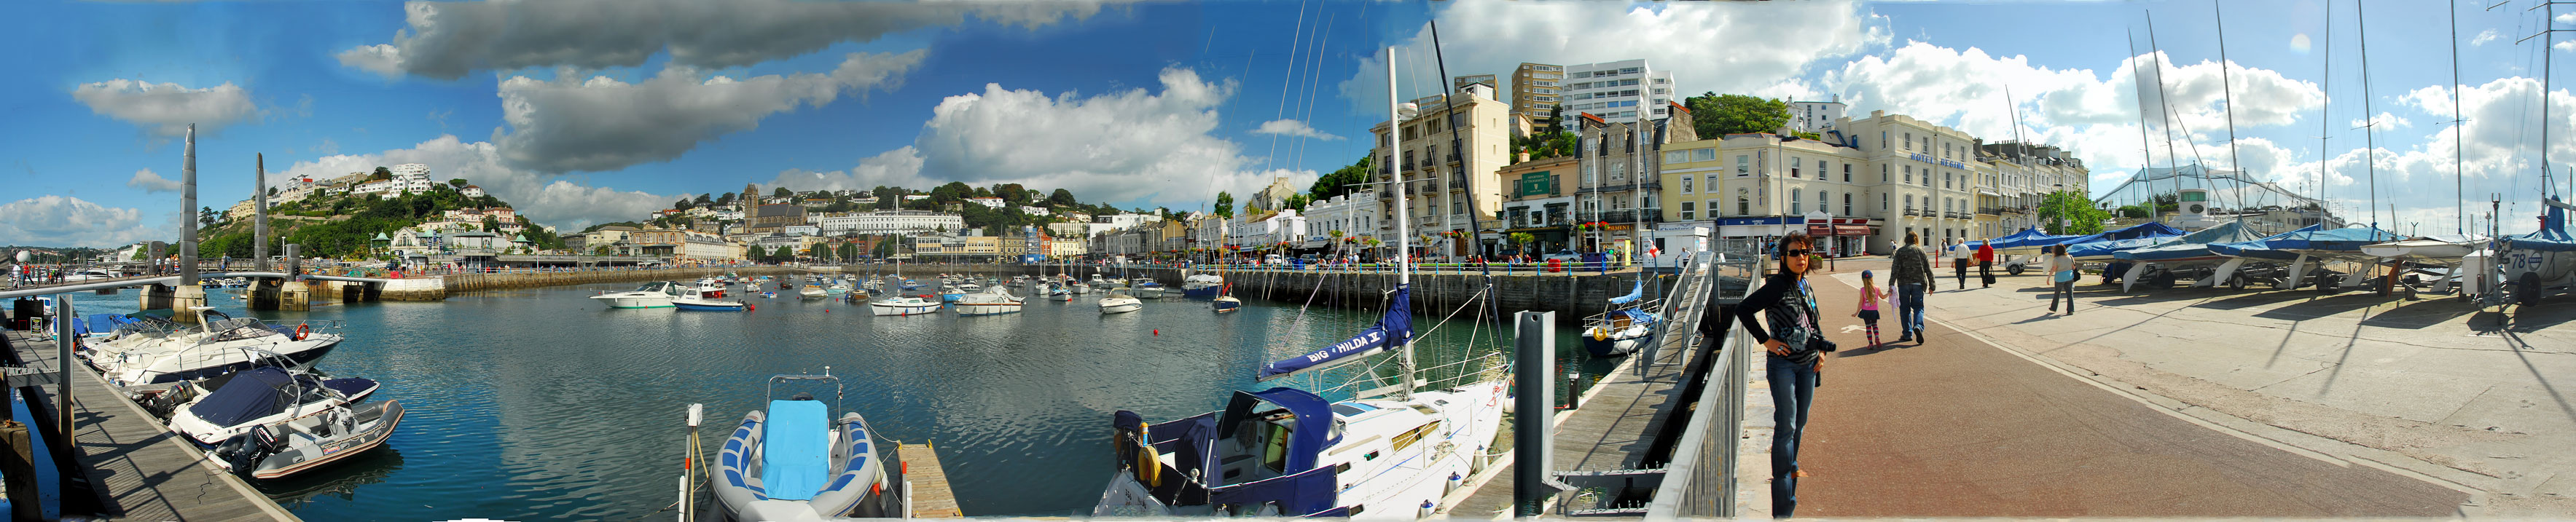 A panorama of Torquay seafront